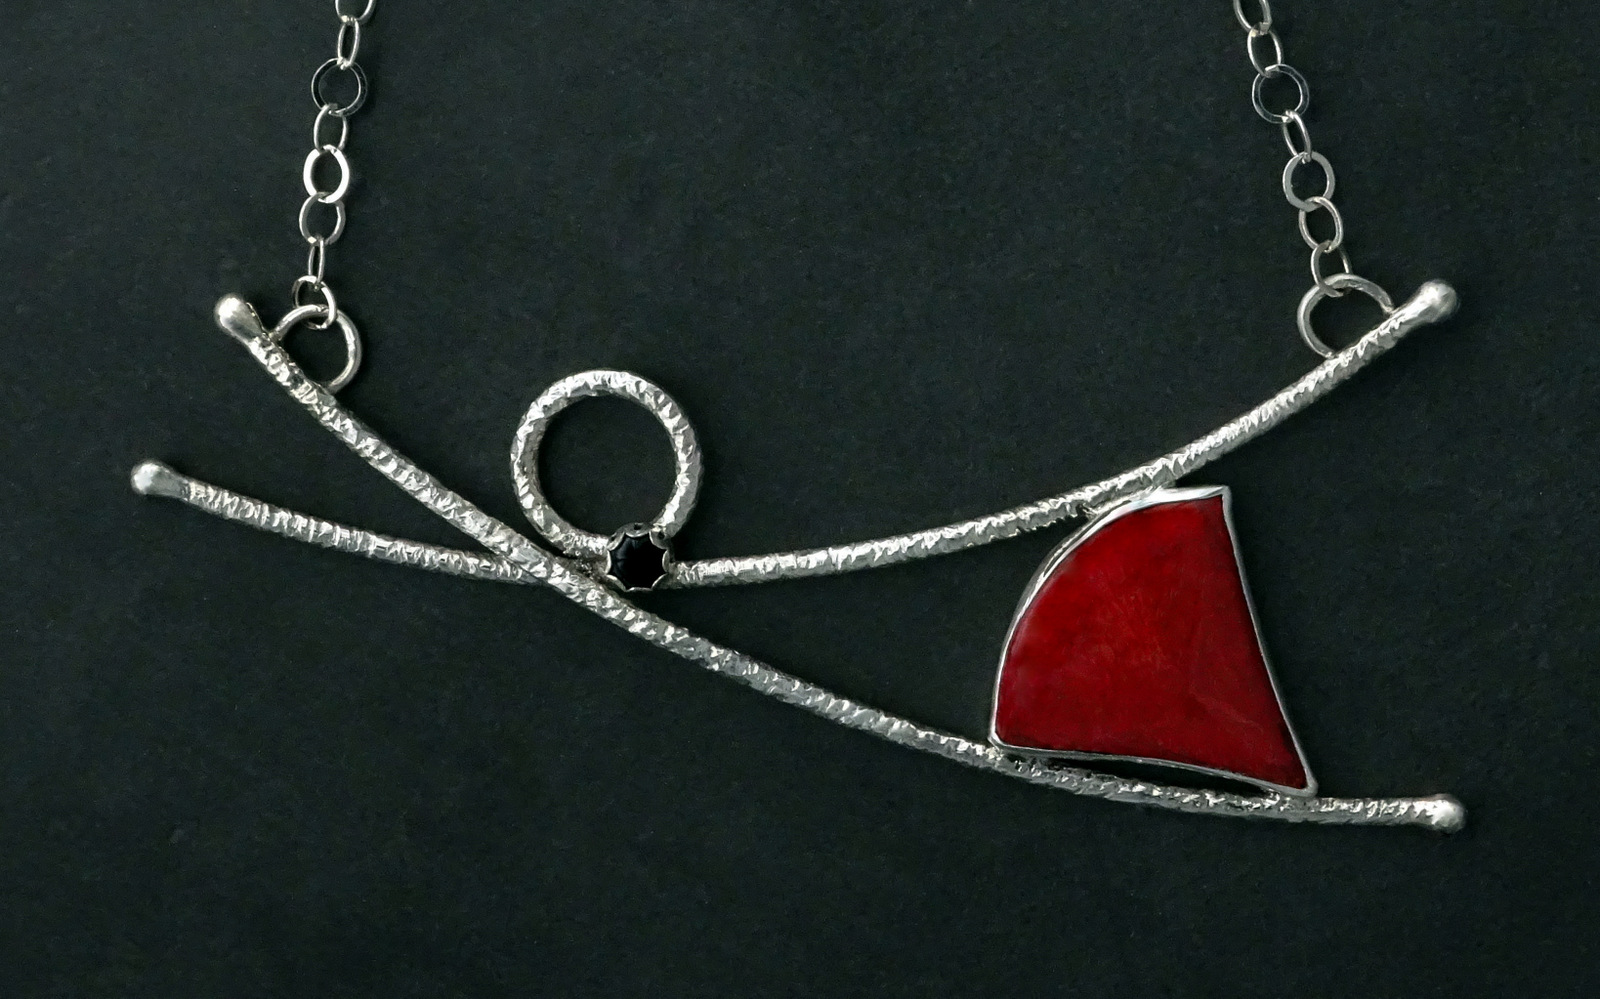 MEDIUM DANCING SPIRIT NECKLACE WITH TRIANGULAR RED STONE,  Pendant - 5 x 2 inches, Chain Length - 22 inches